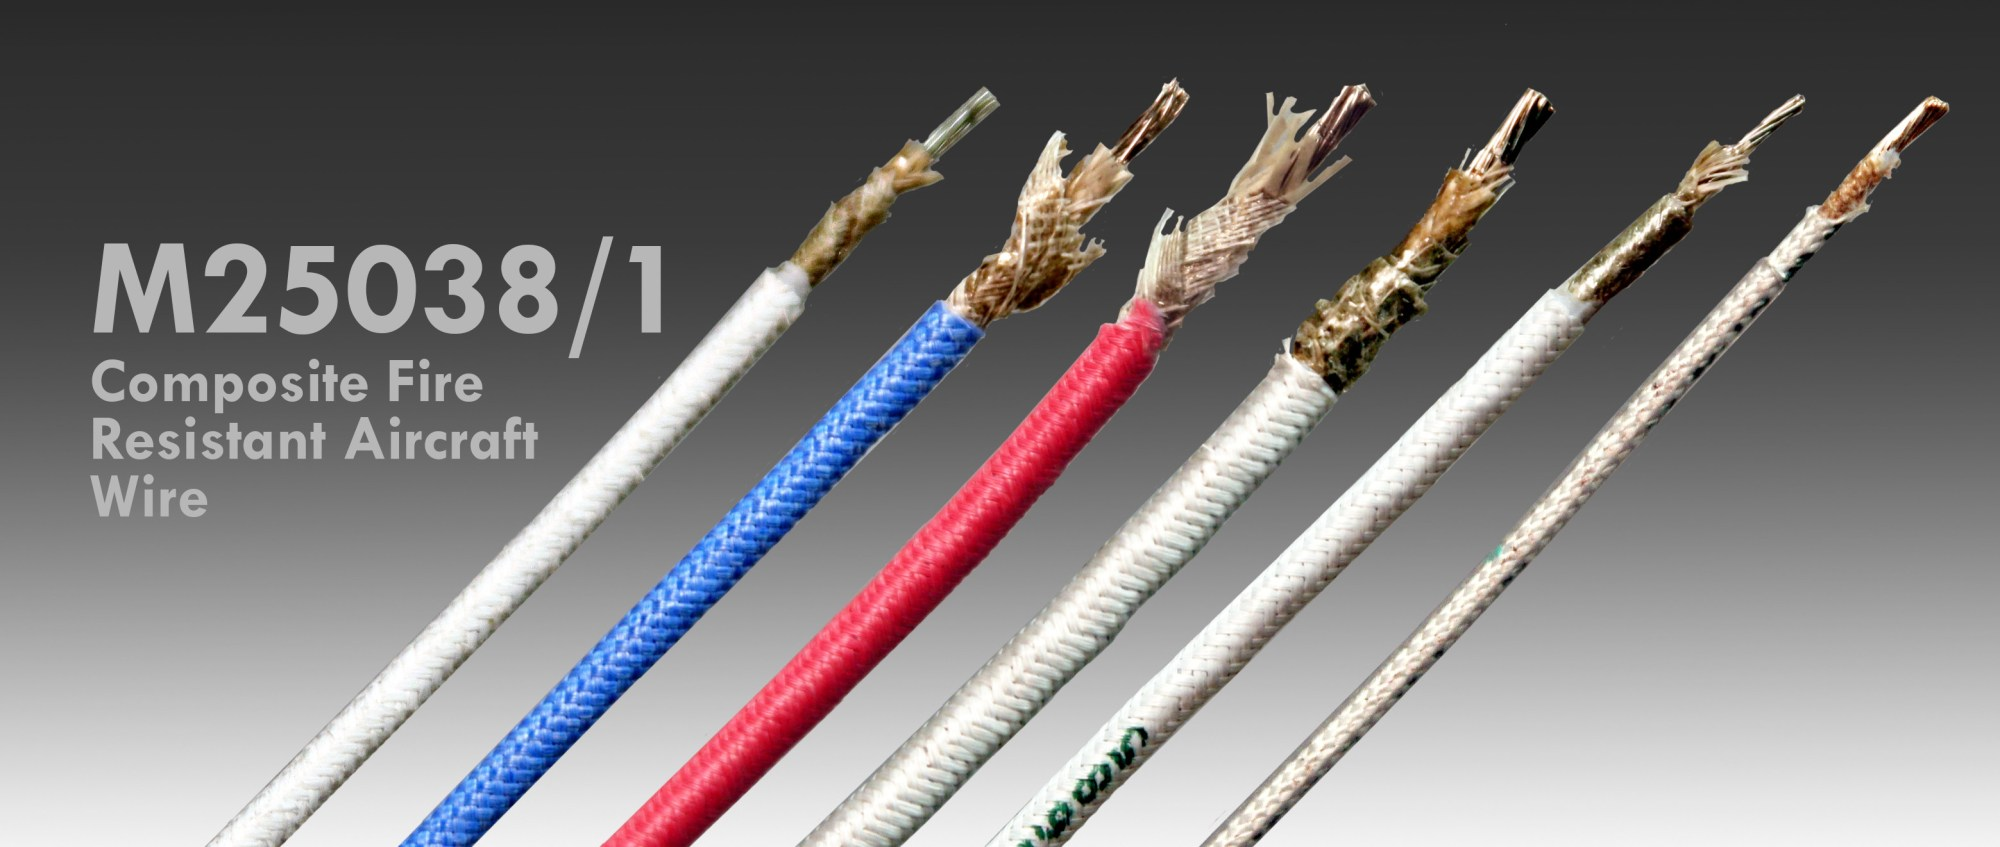 hight resolution of m25038 1 mil w 25038 1 fire resistant aircraft wire